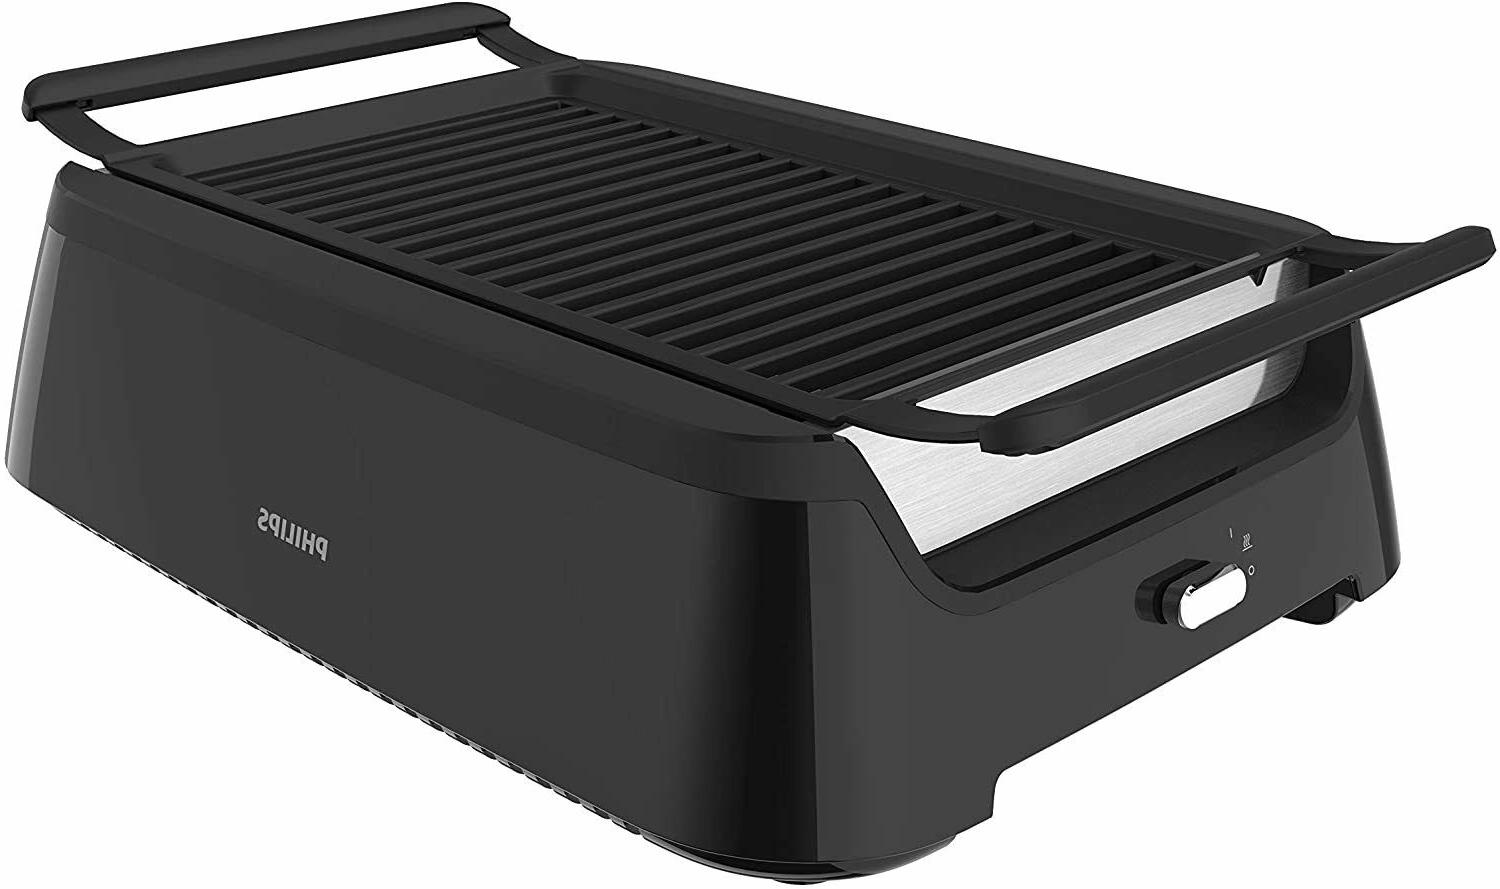 hd6371 94 avance smokeless indoor bbq grill